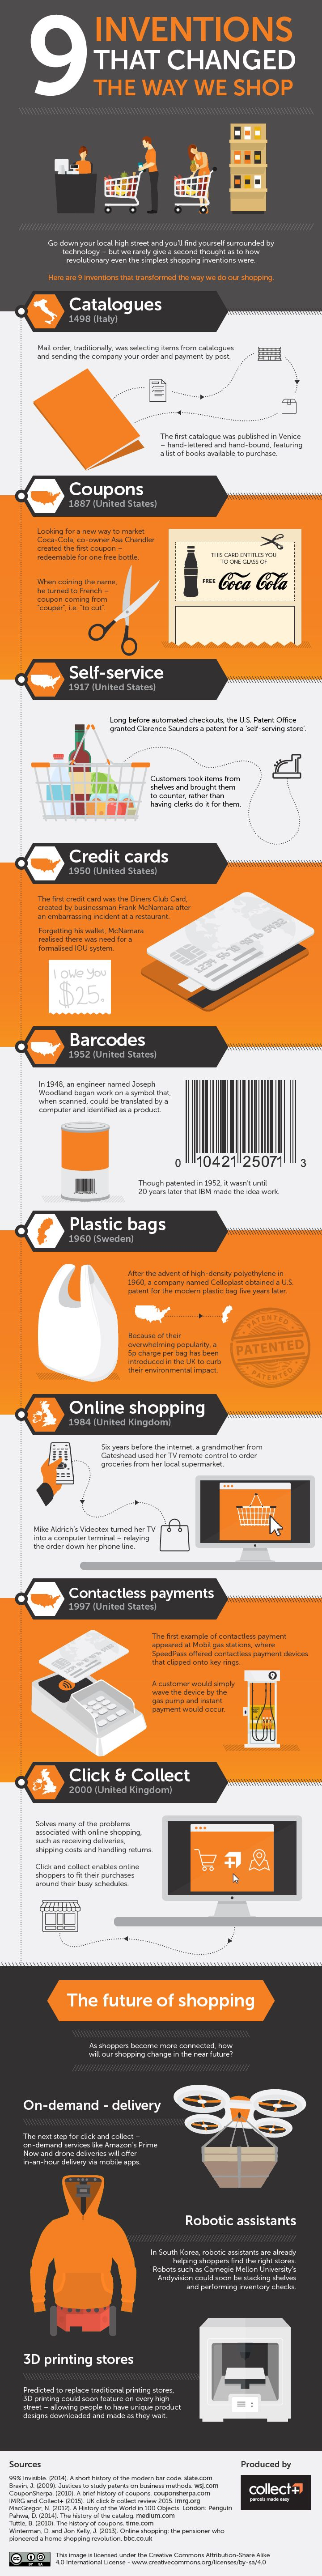 9 Inventions That Changed the Way We Shop #infographic